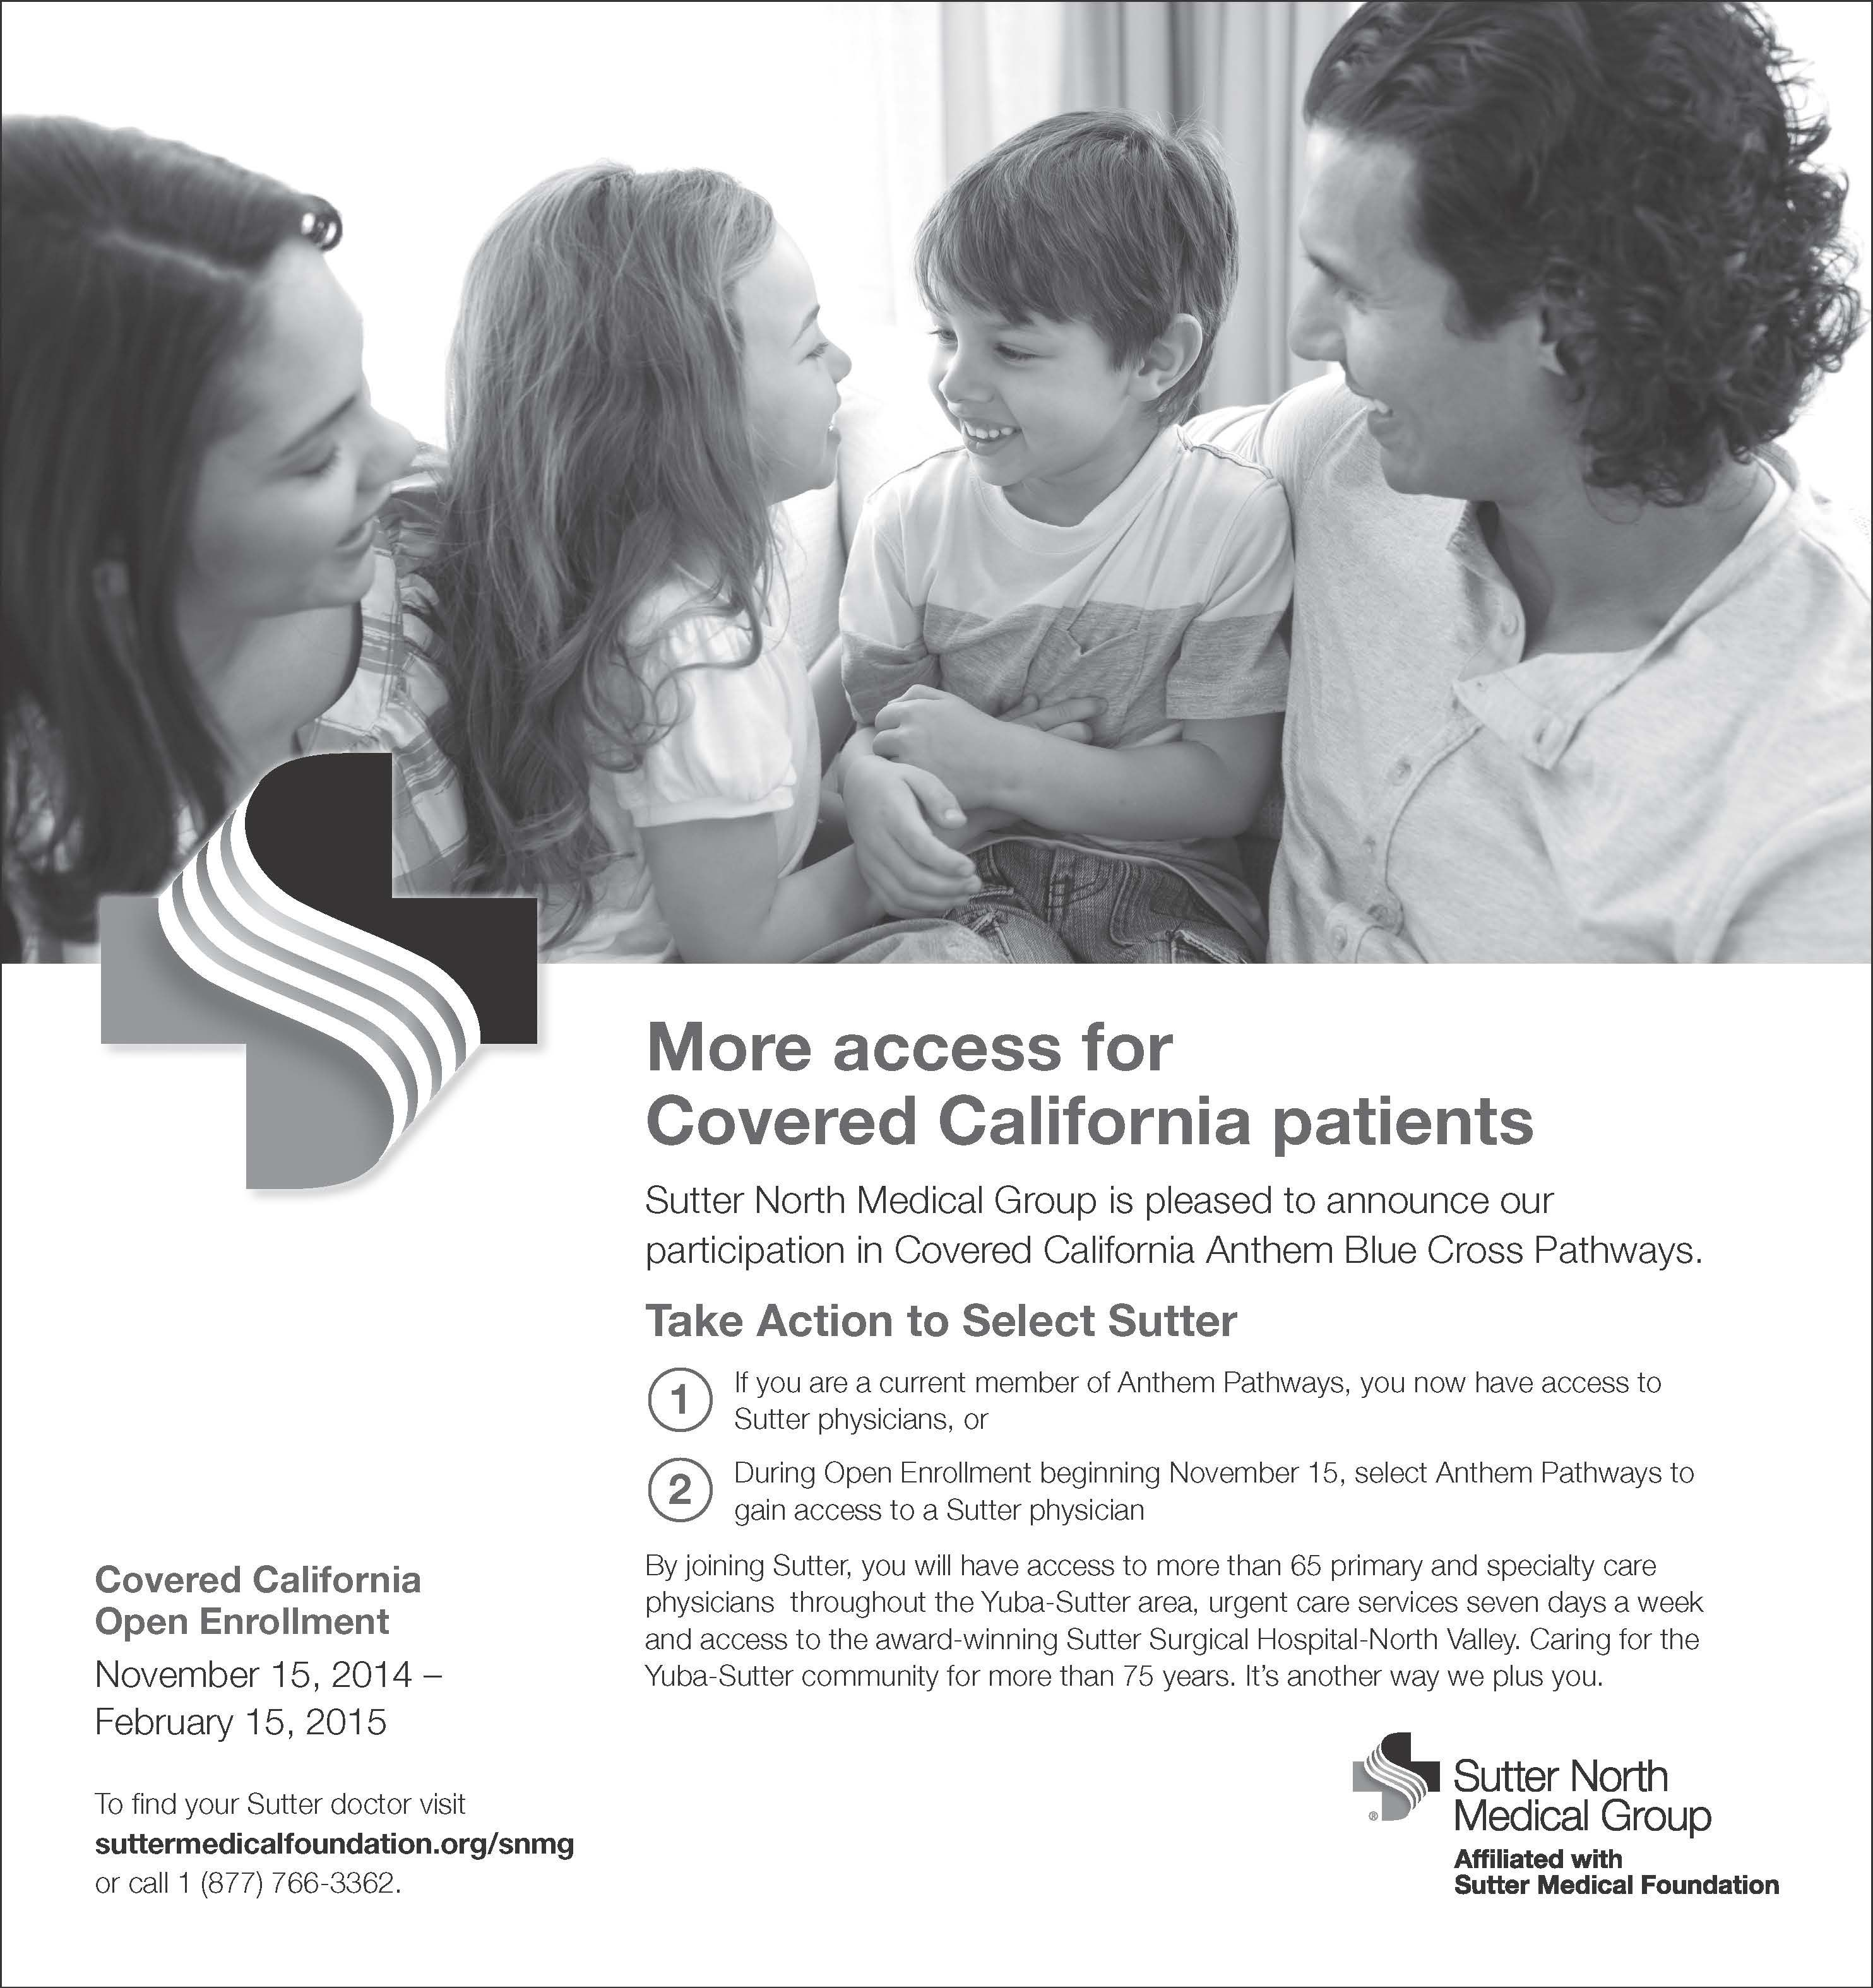 More access for Covered California patients! Sutter North